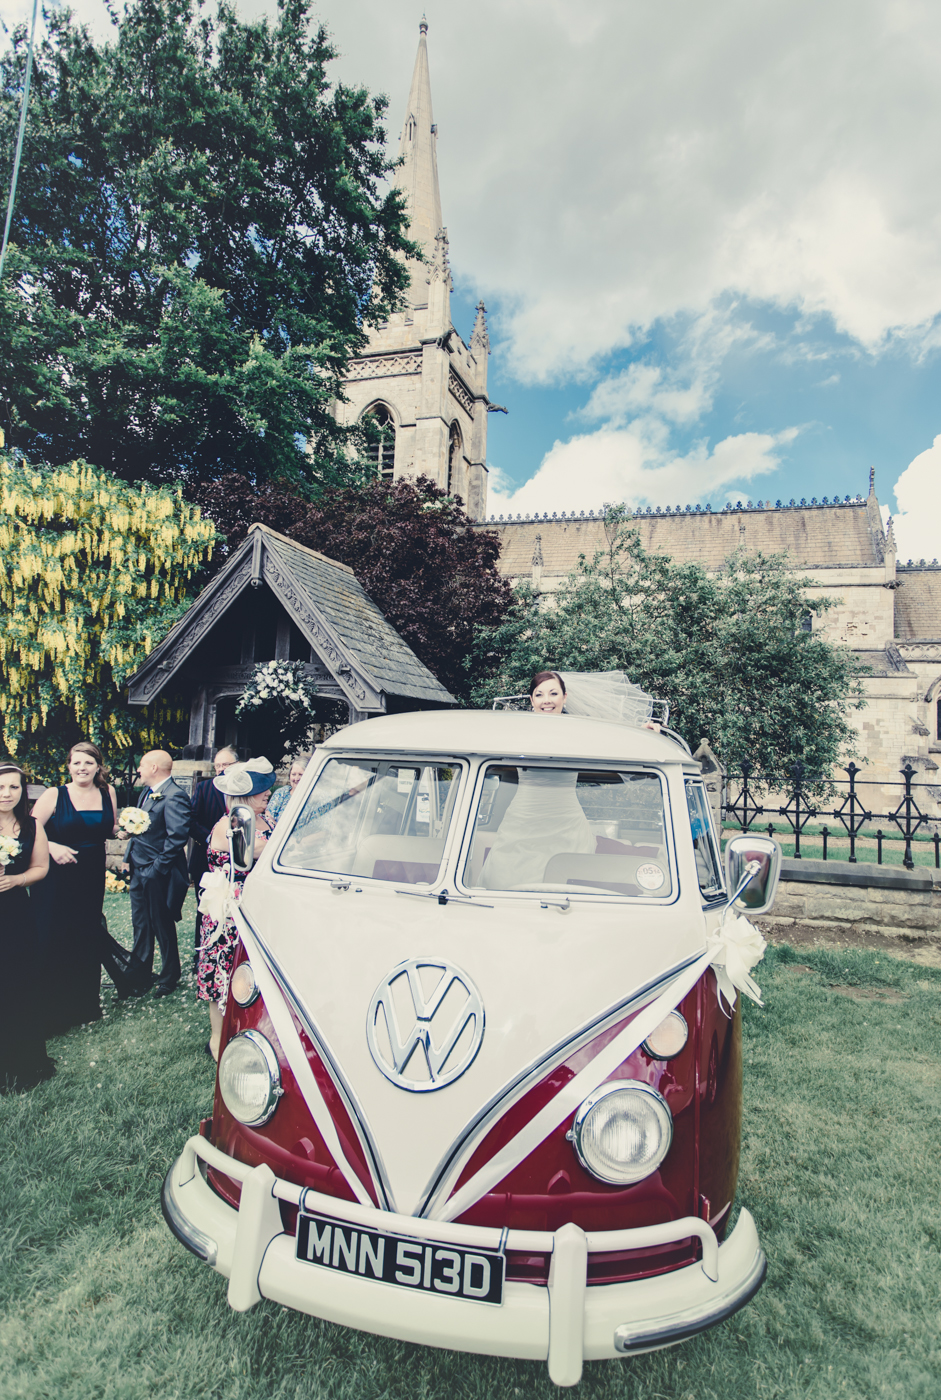 254 - Chris and Natalies Wedding (MAIN) - DO NOT SHARE THIS IMAGES ONLINE -0289.JPG